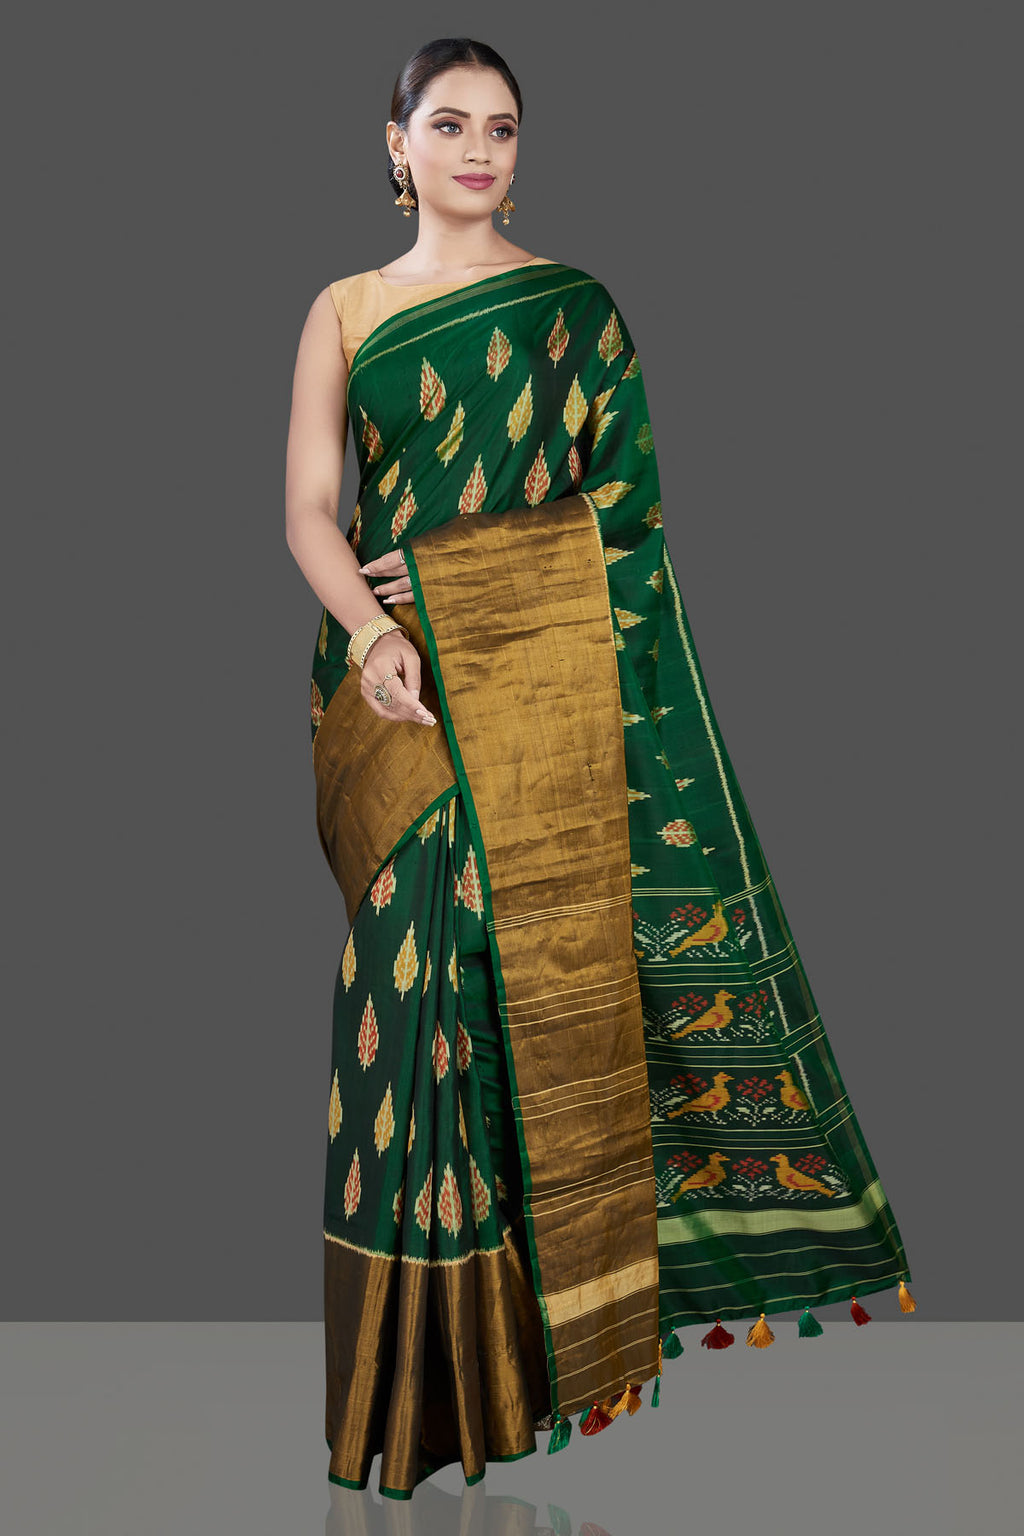 Buy beautiful bottle green Patola sari online in USA with golden zari border. Be the talk of the occasion in exquisite designer sarees, pure silk sarees, tussar saris, embroidered sarees, handloom sarees from Pure Elegance Indian fashion store in USA.-full view